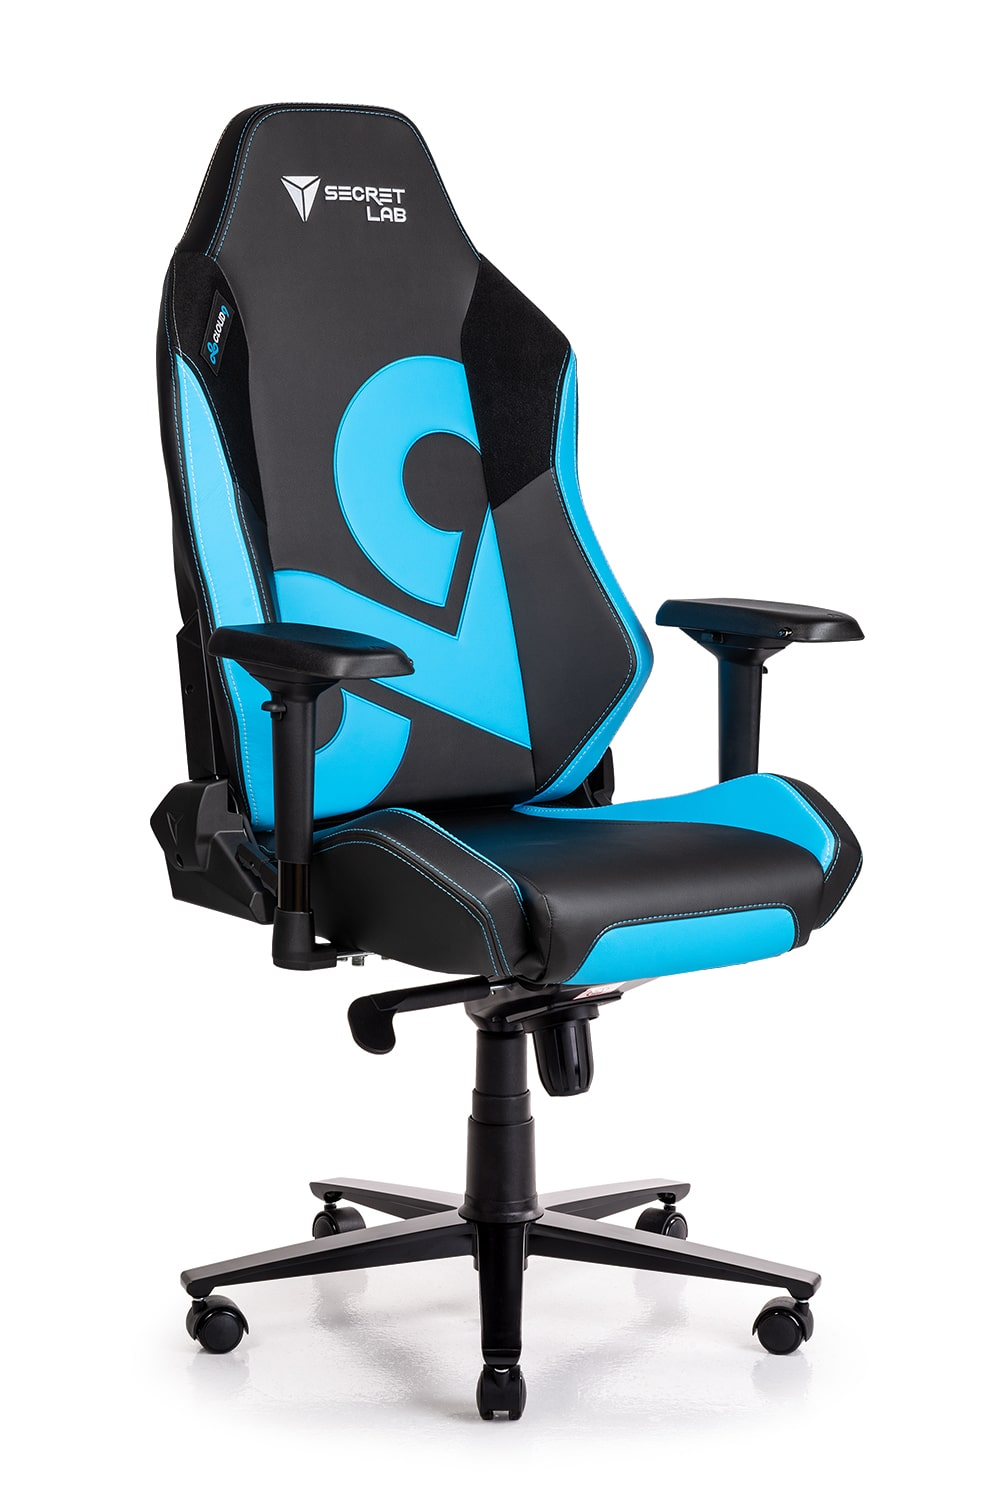 Secretlab OMEGA Series - Cloud9 Special Edition Gaming Chair